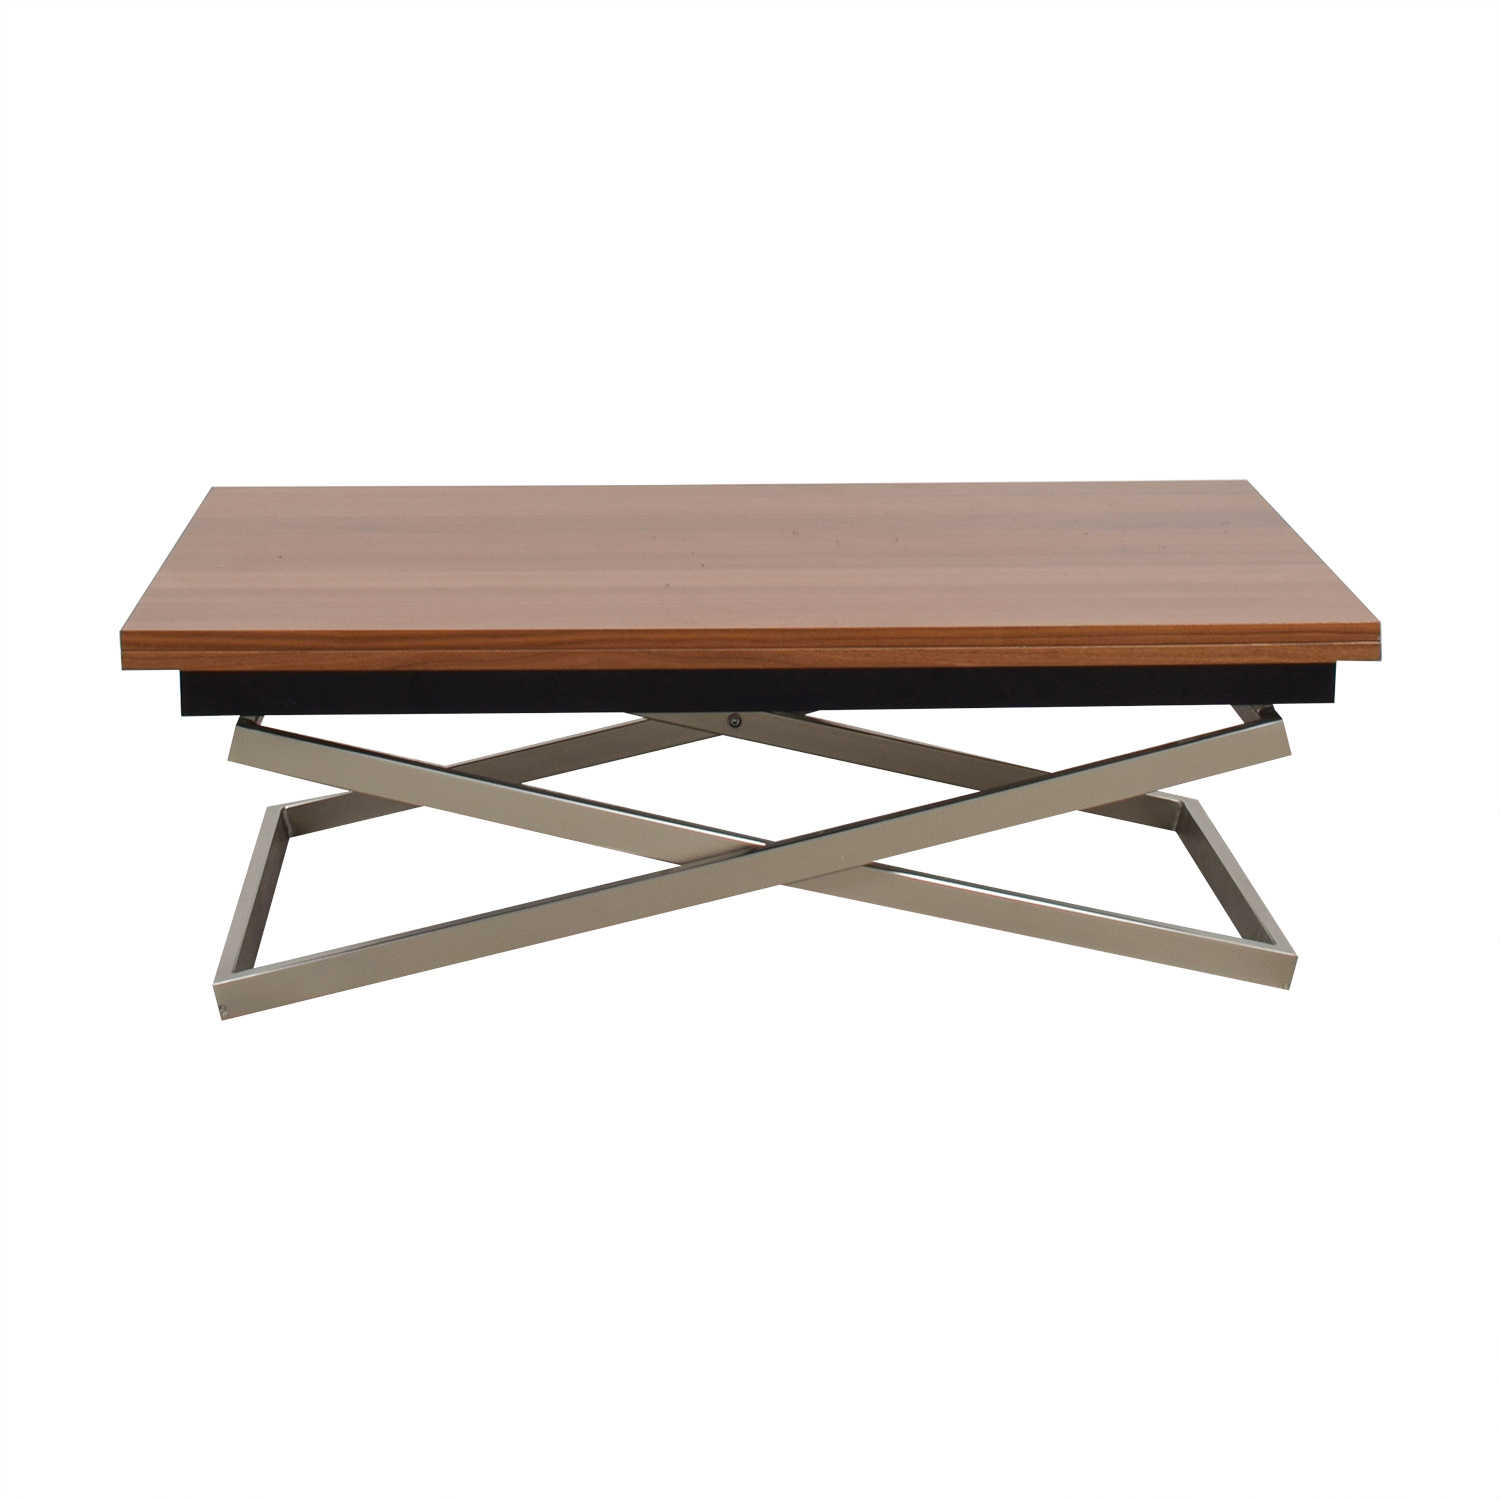 56 Off Boconcept Bo Concept Rubi Adjule Table From Coffee To Dining Tables